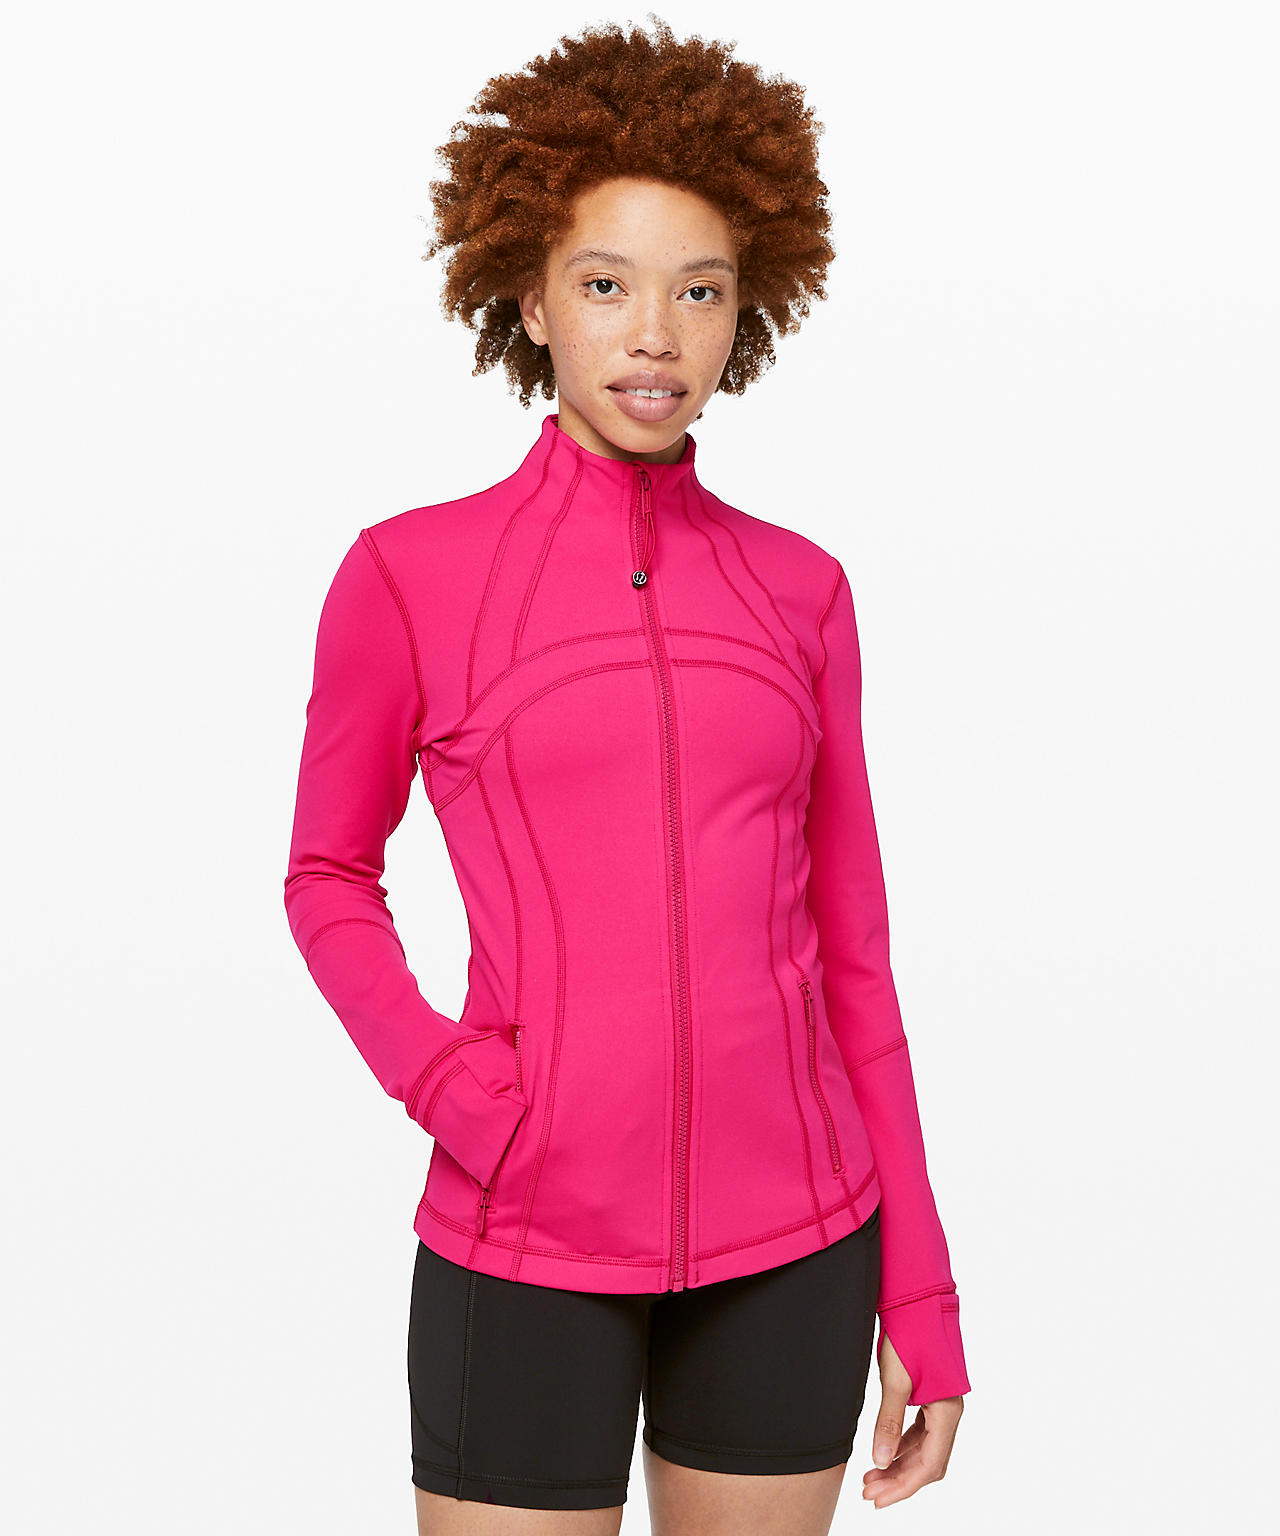 Define Jacket, Lululemon Upload